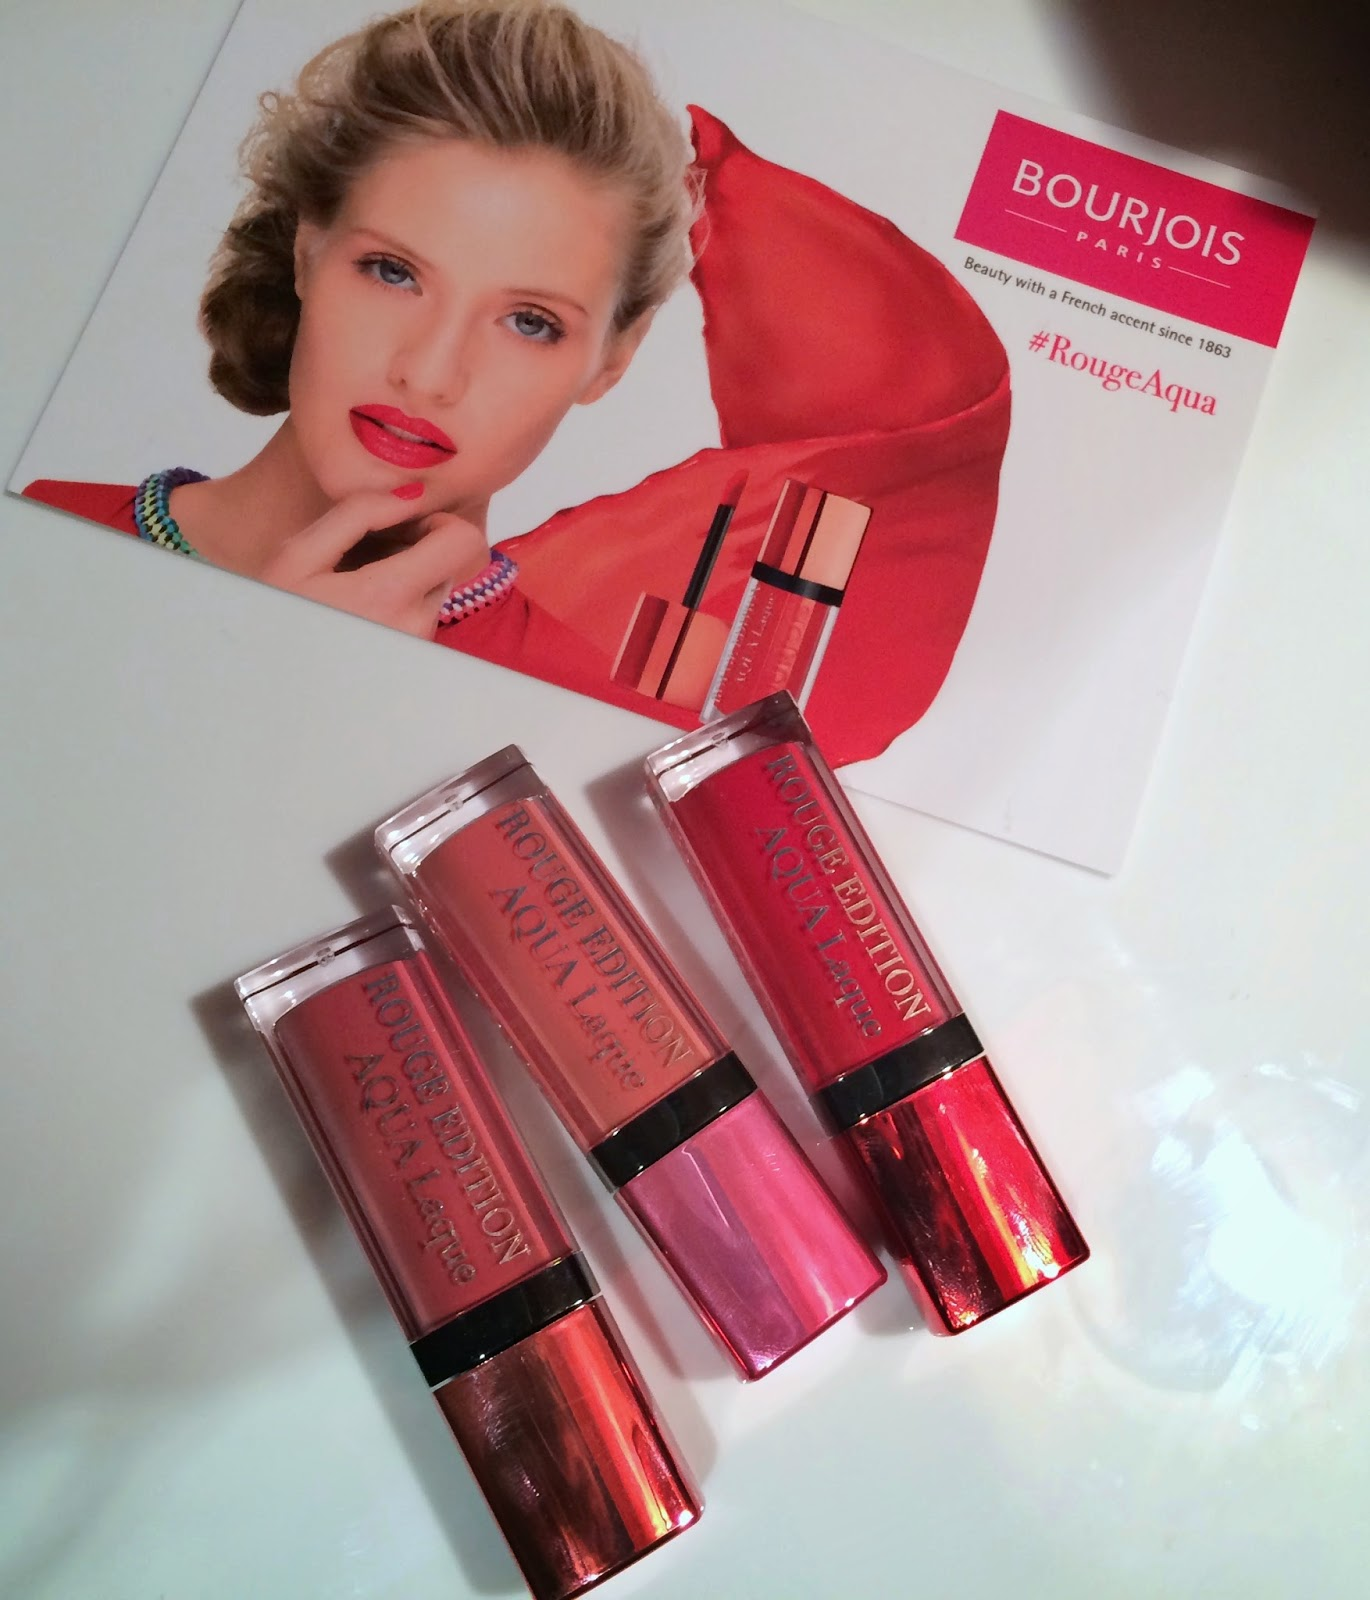 bourjois-event-2015-aqua-laque-lipstick-gloss